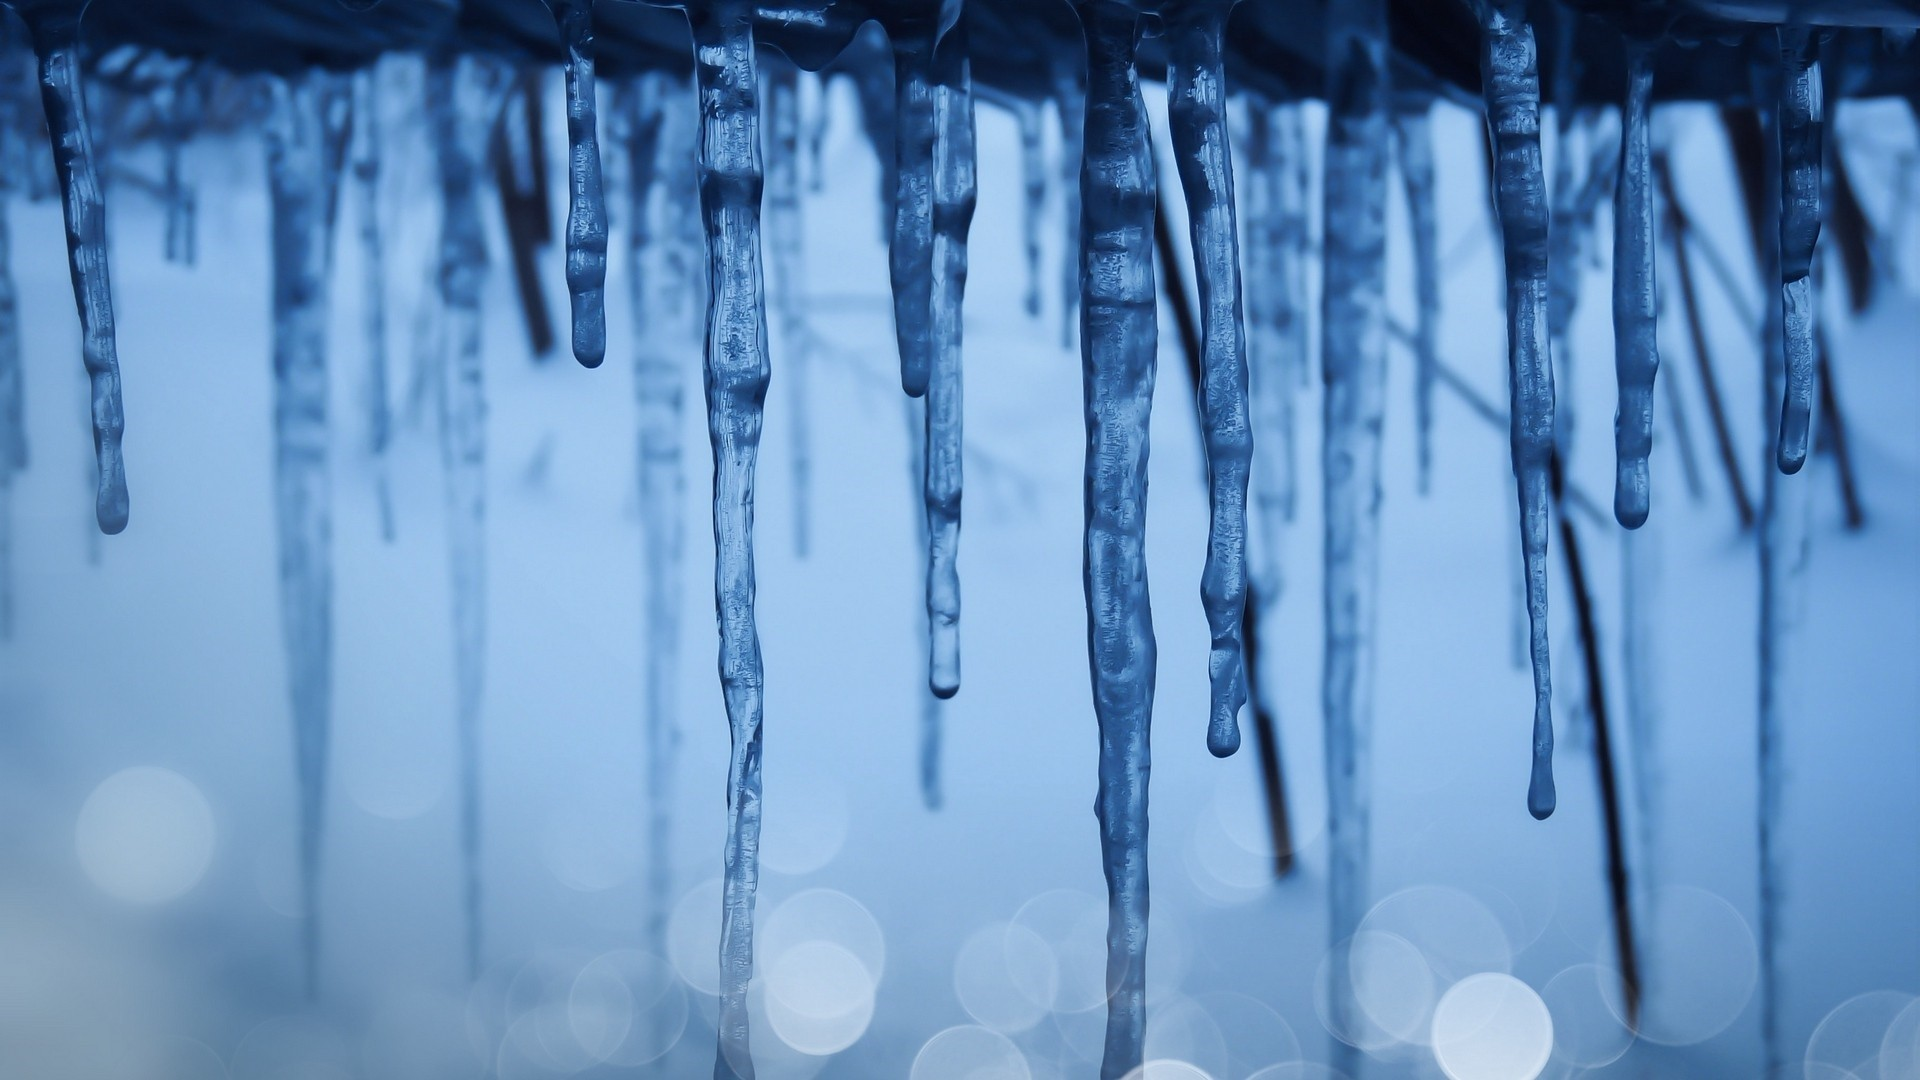 Icicles hd wallpaper download